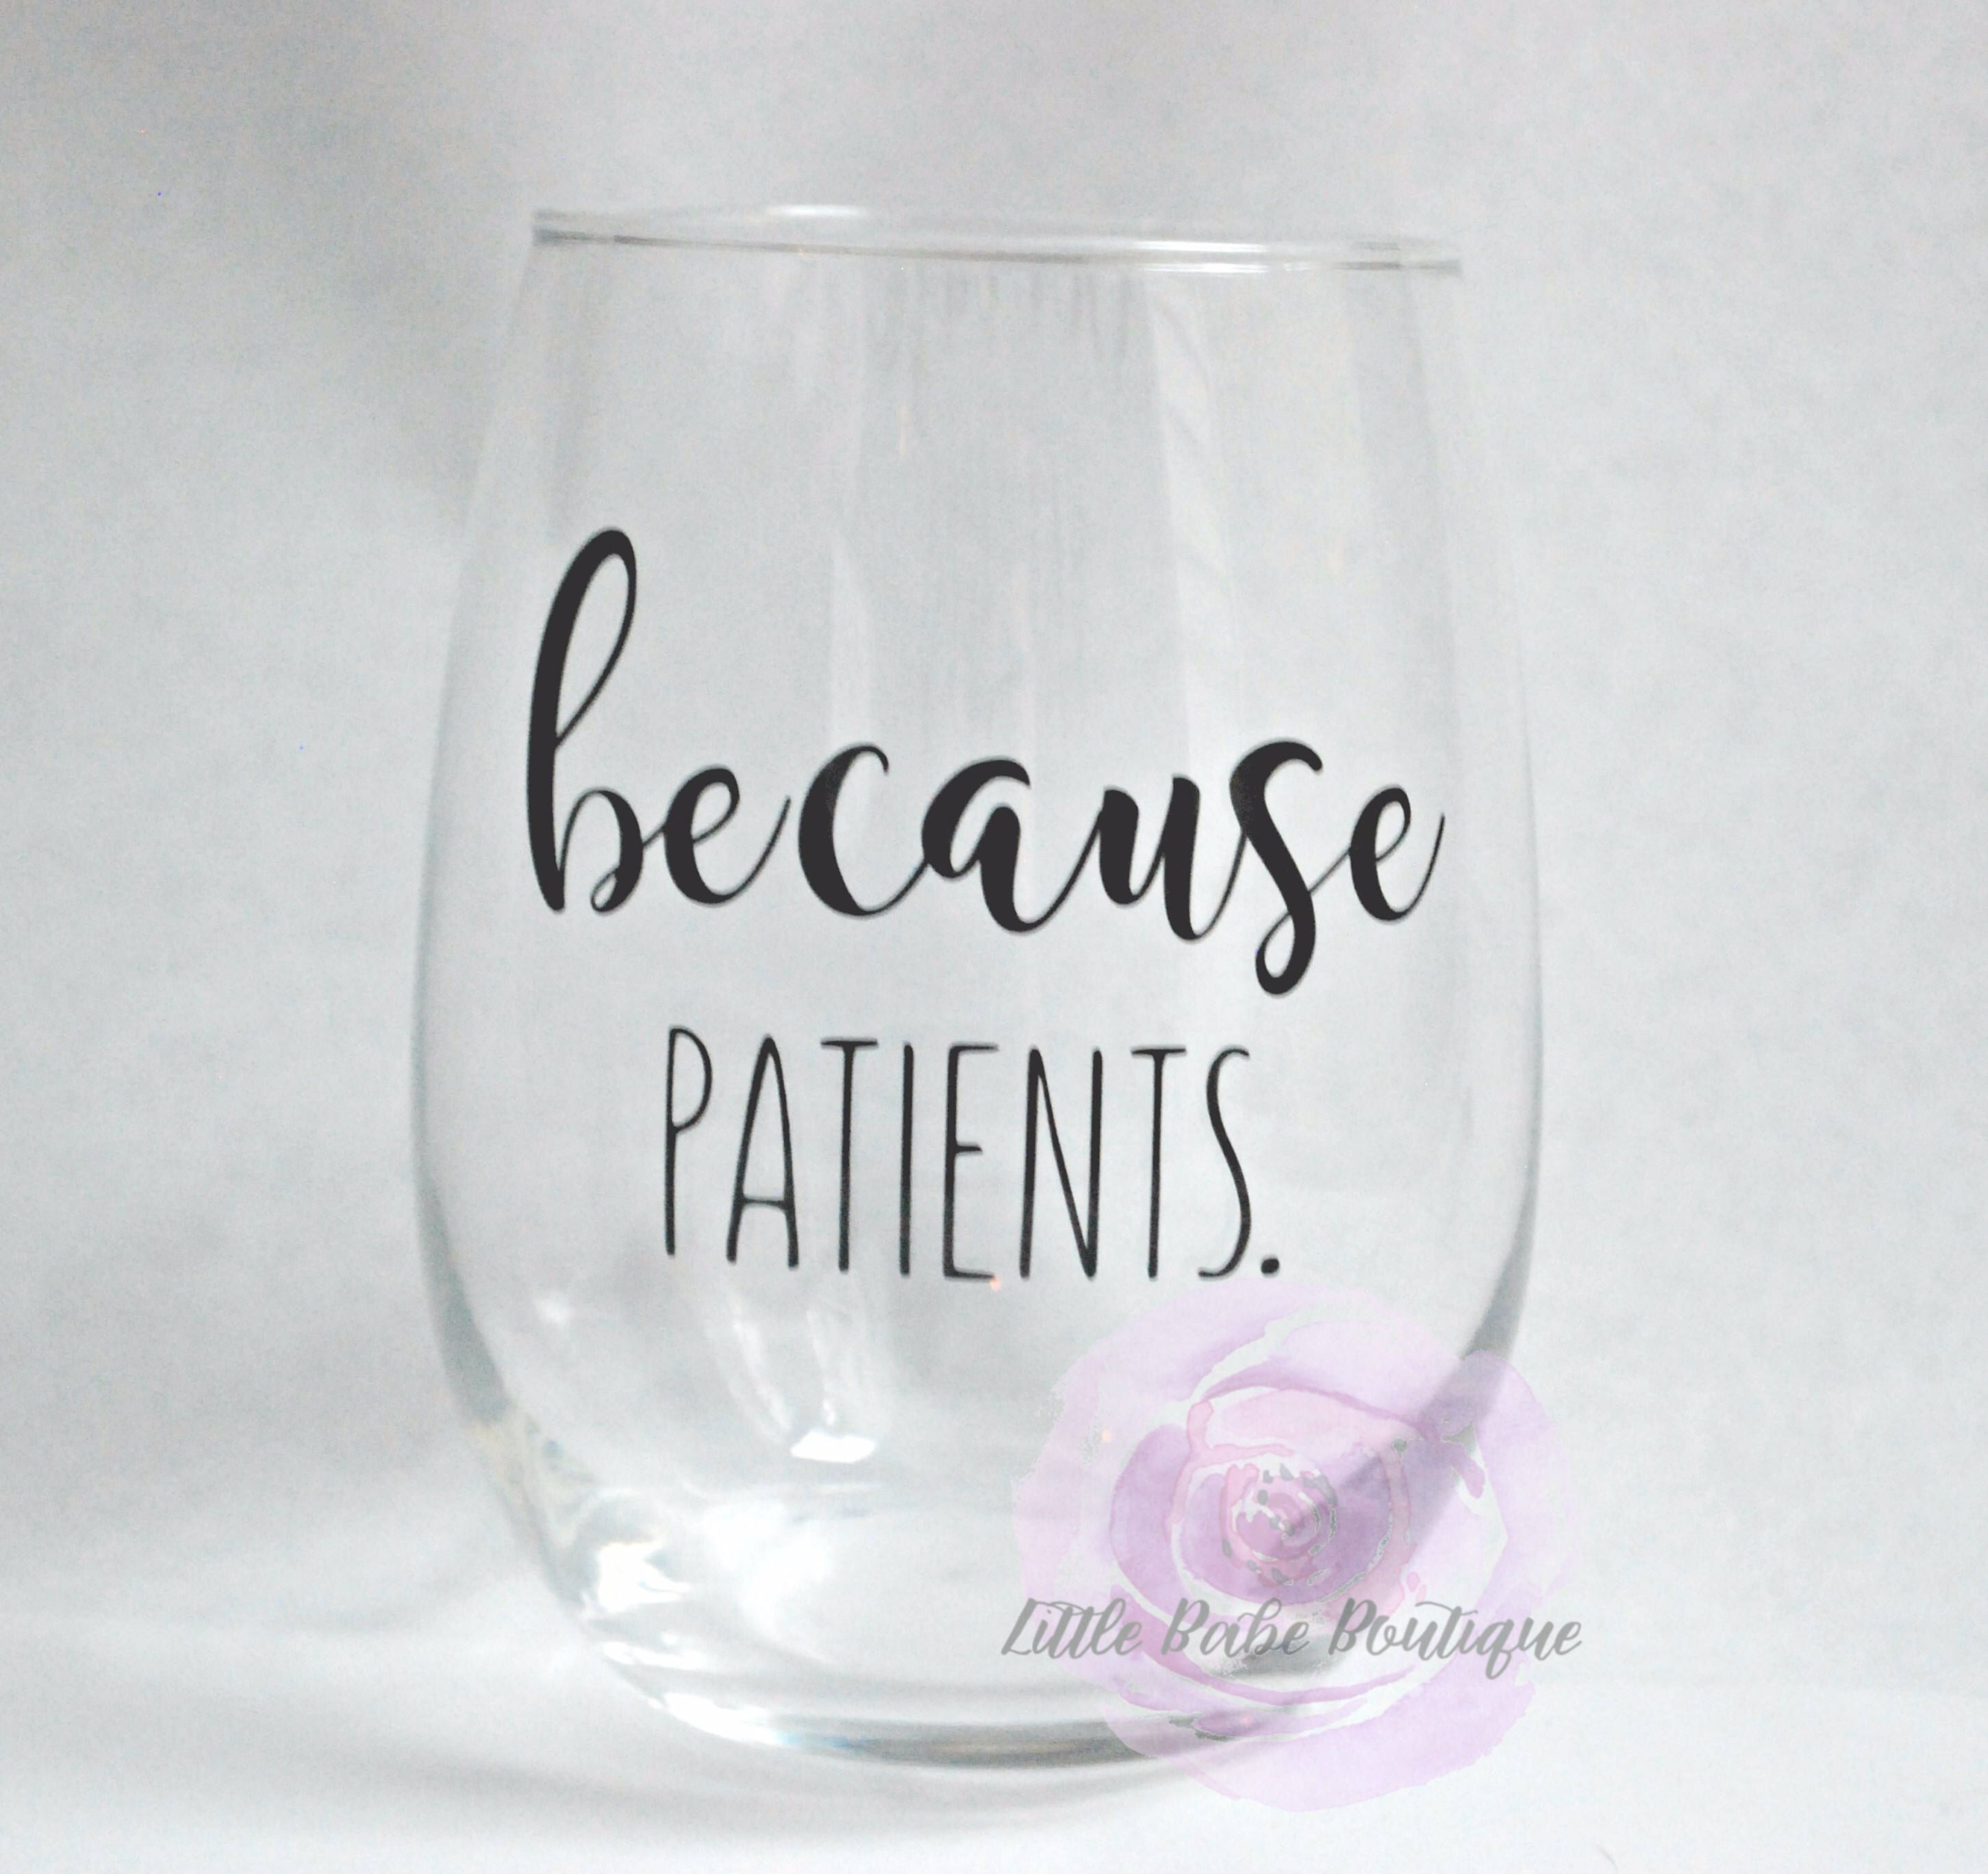 Because patients stemless wine glass for dental medical